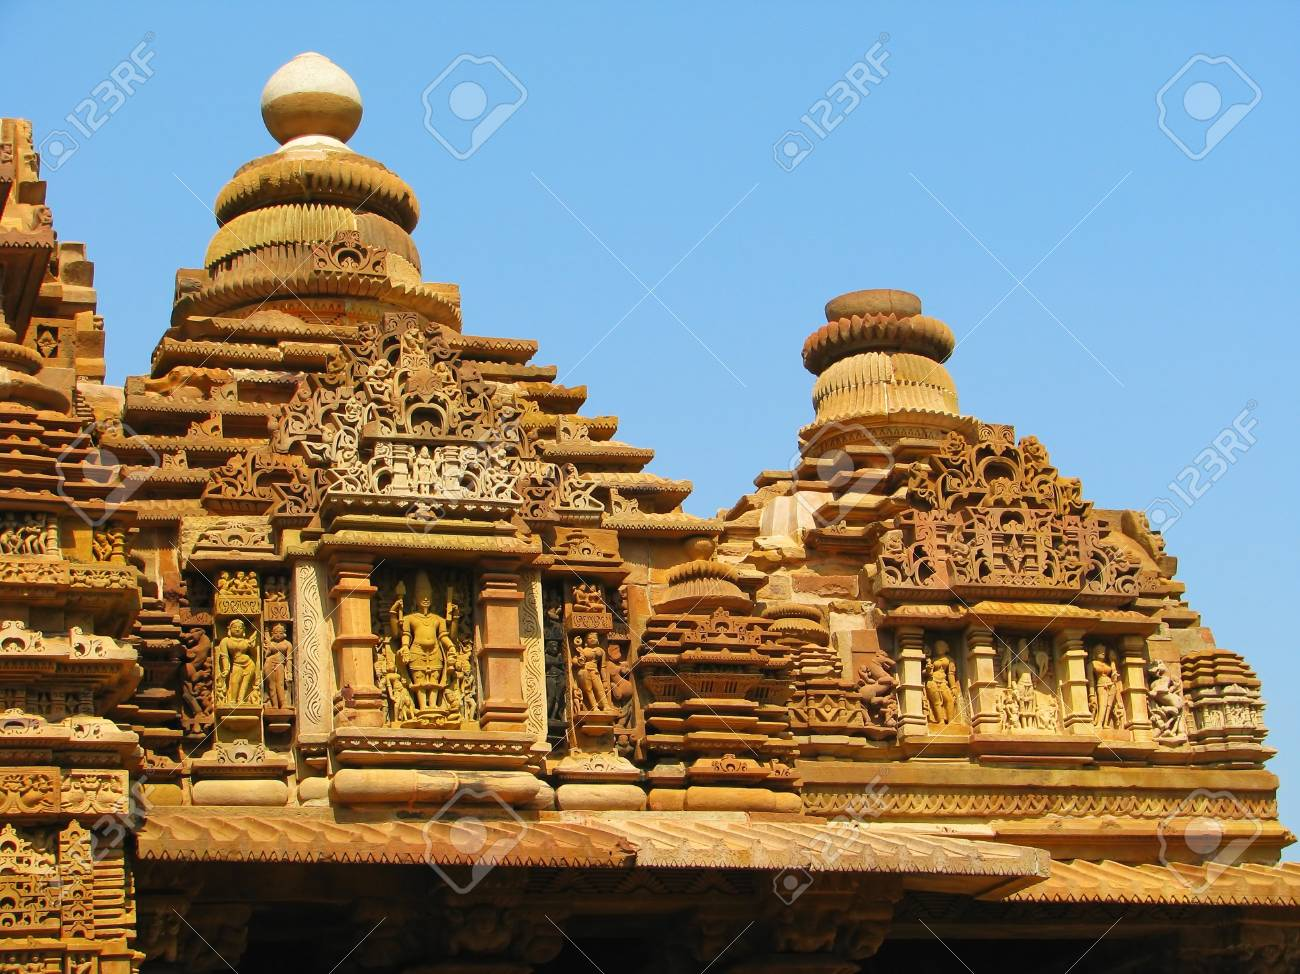 Stone carved temple with erotic sculptures in Khajuraho, Madhya Pradesh, India Stock Photo - 13060844